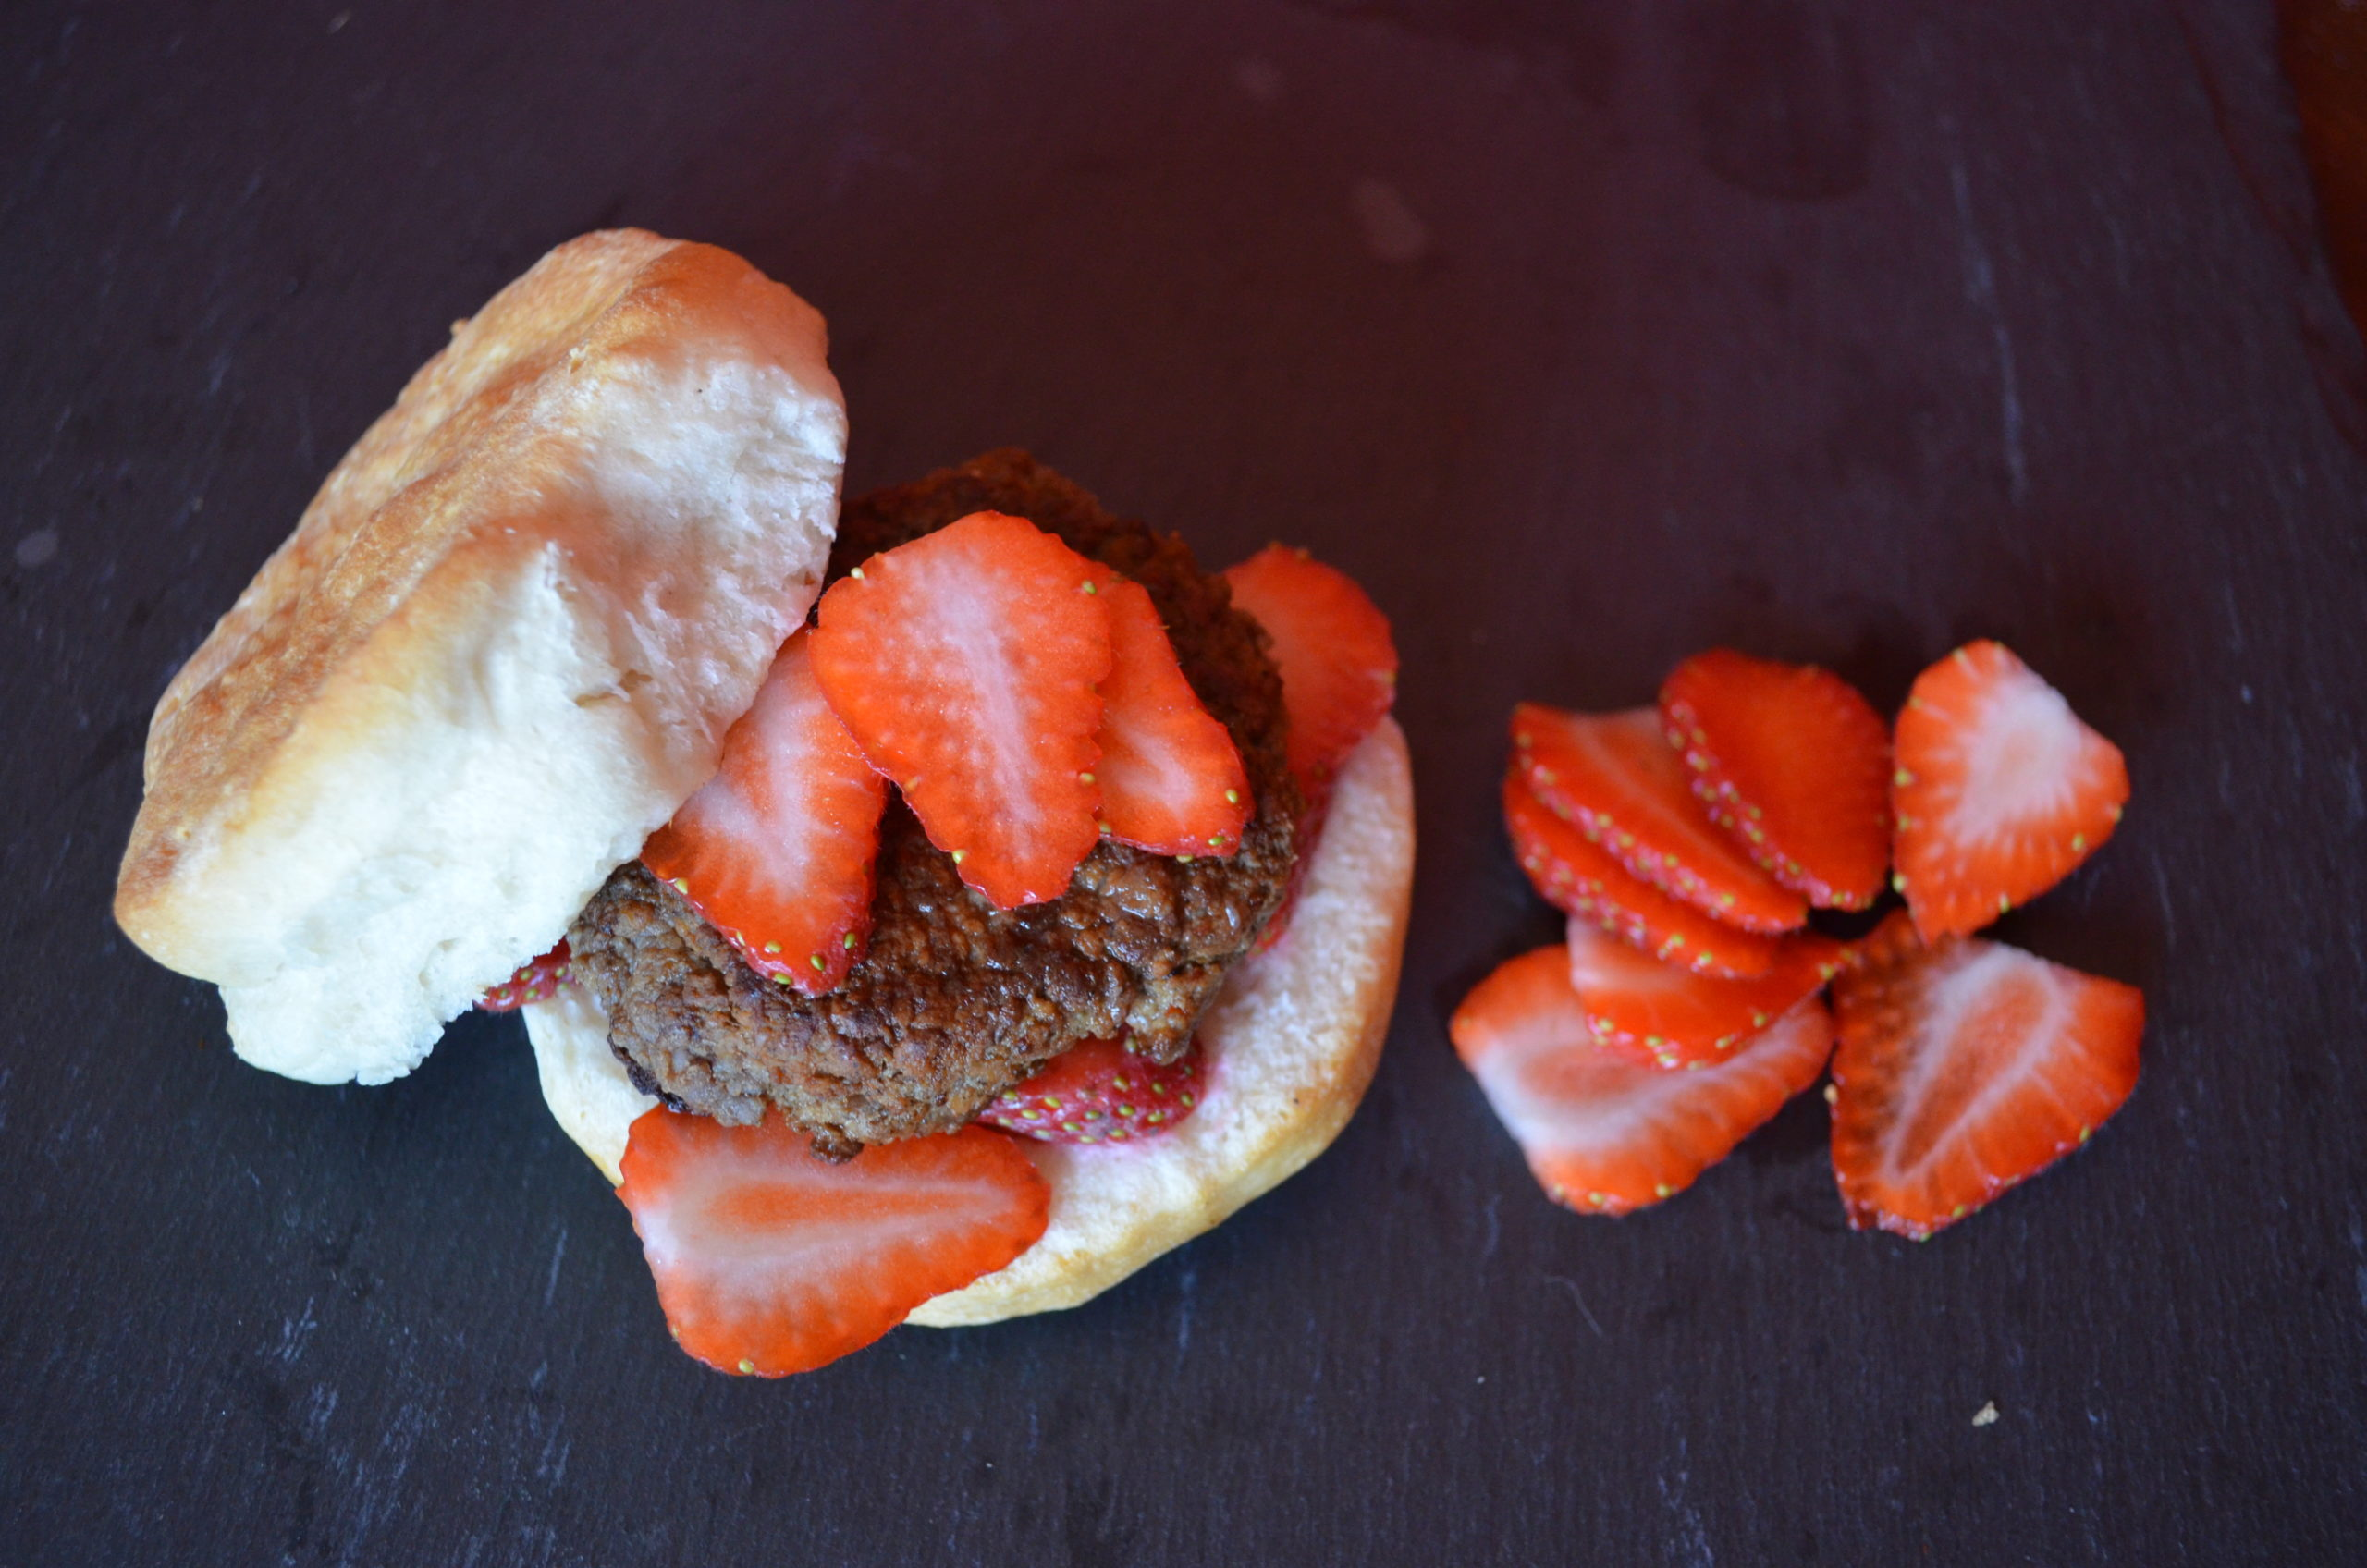 #Ad Strawberry and Sausage Breakfast Sandwich